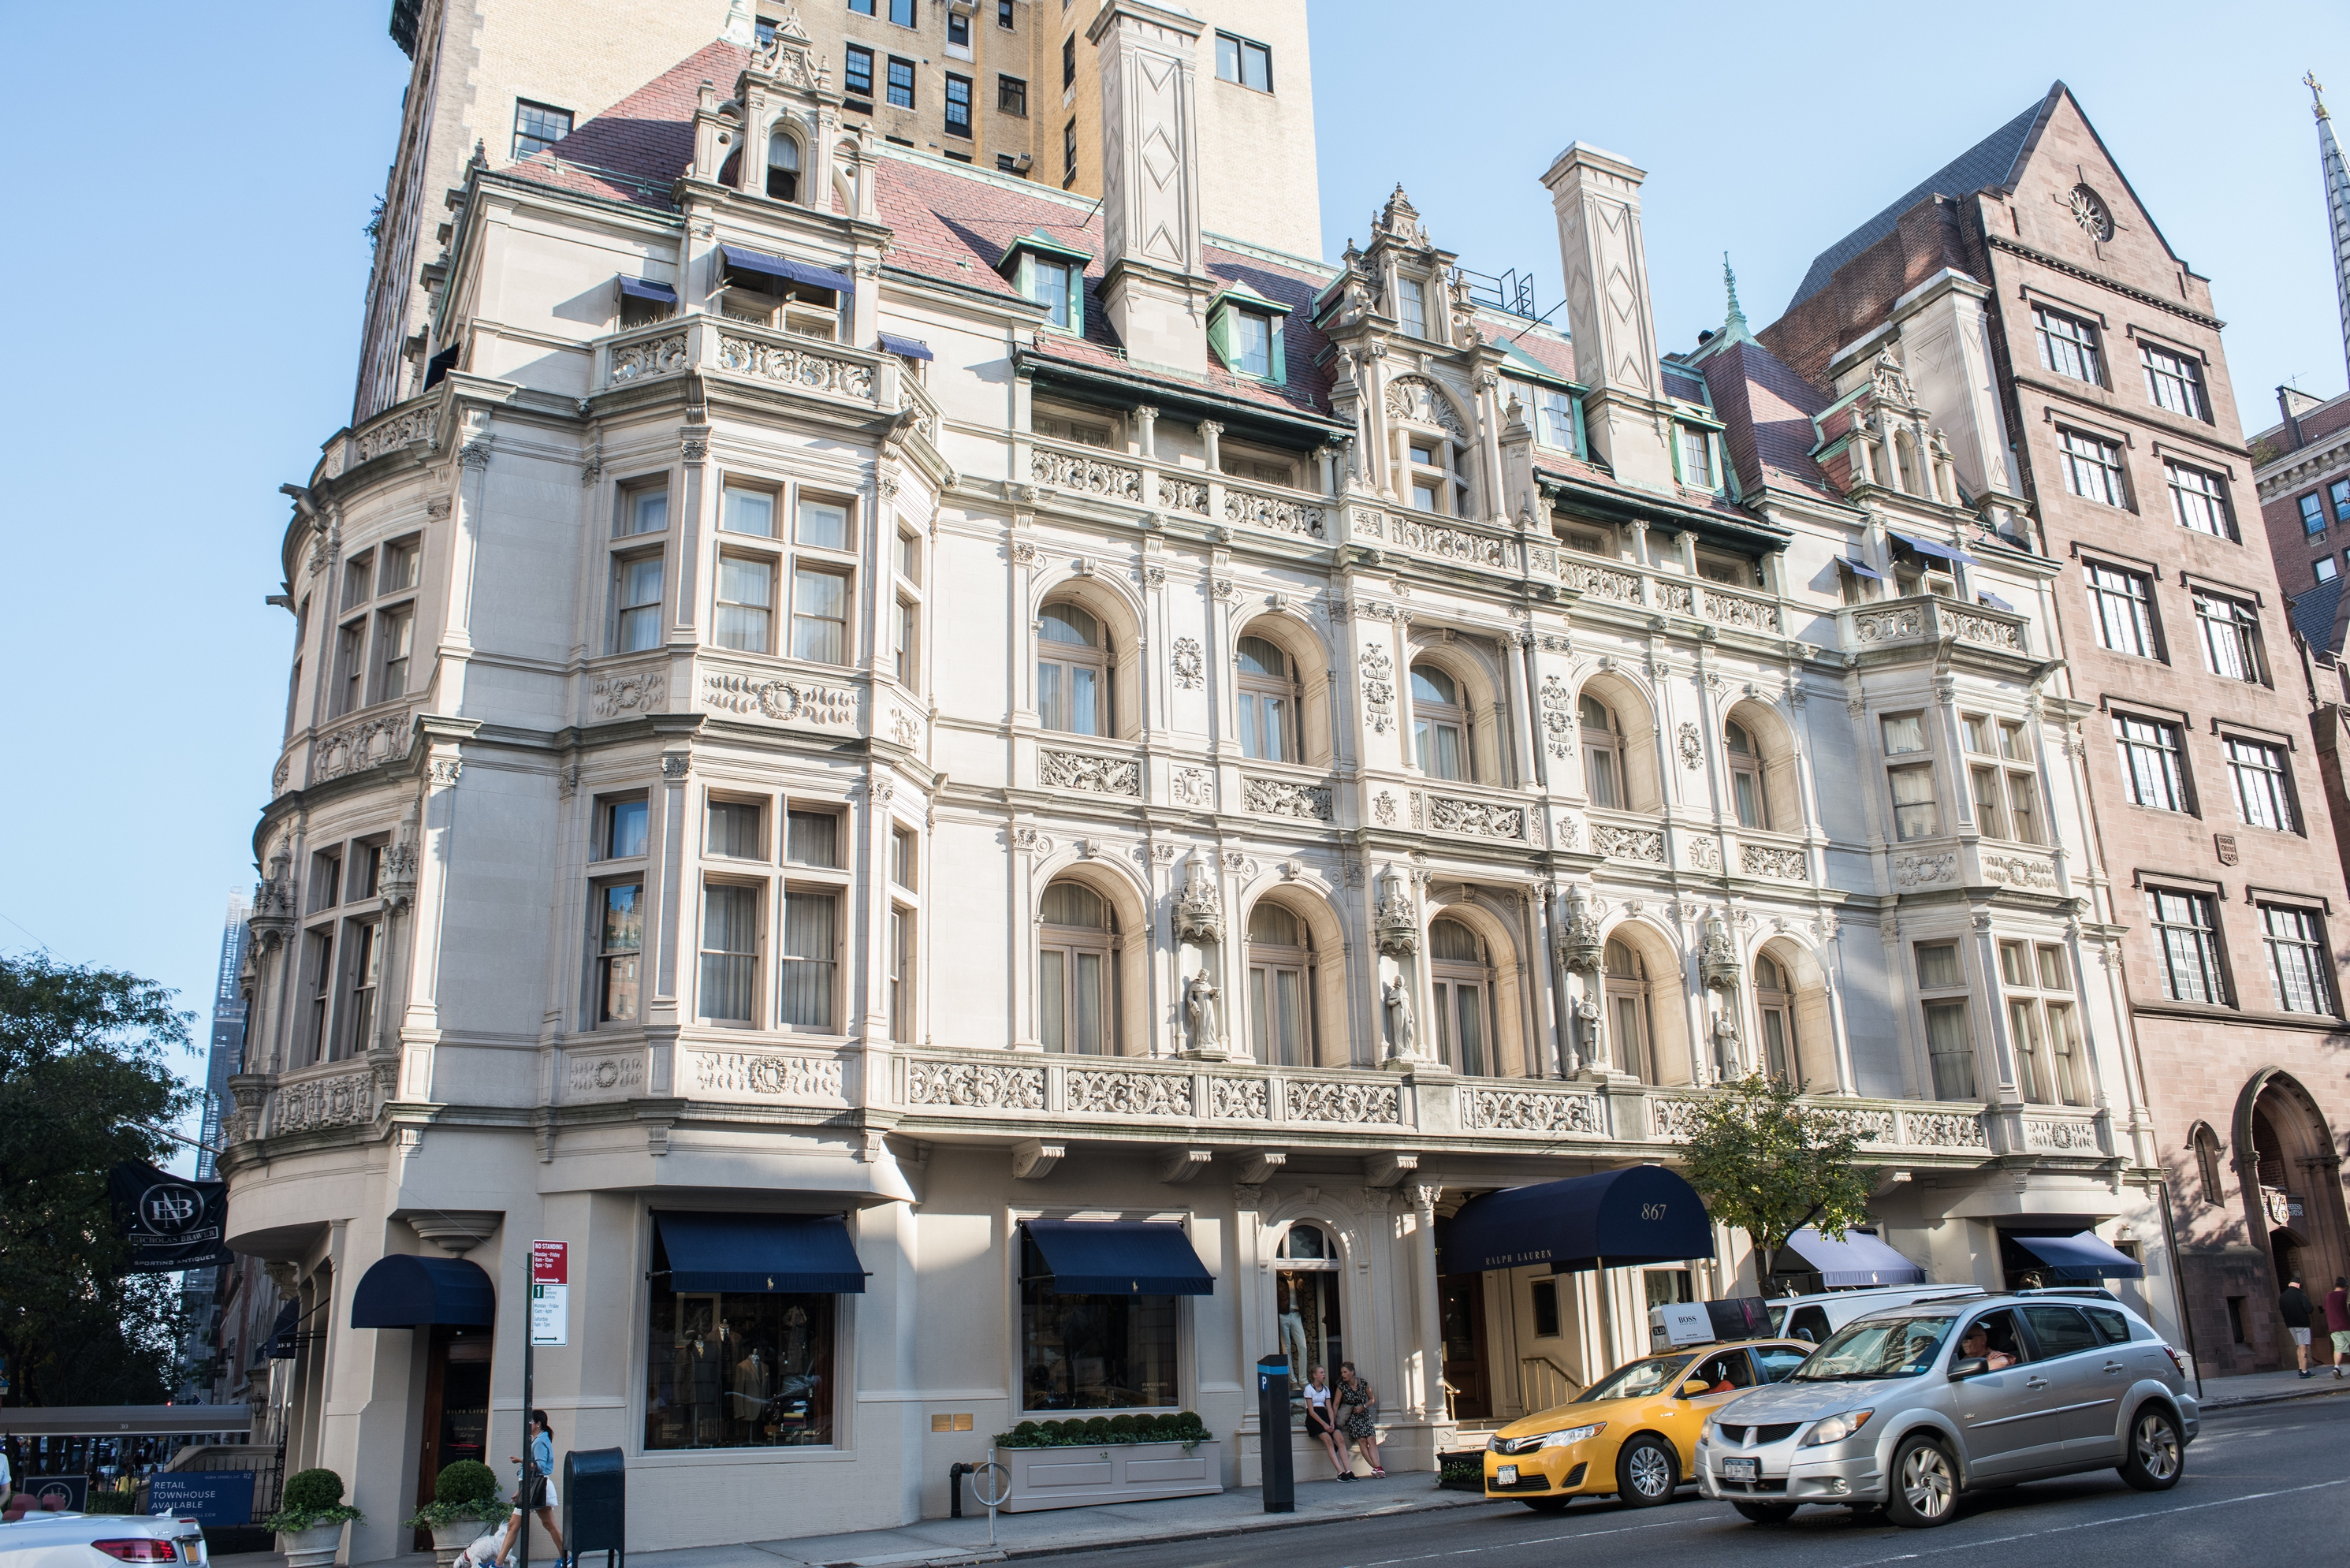 (English) Madison Avenue High Fashion & Historic Preservation: An Architectural Walking Tour with the New York Chapter of the American Institute of Architects, May 14 & 21, 2019